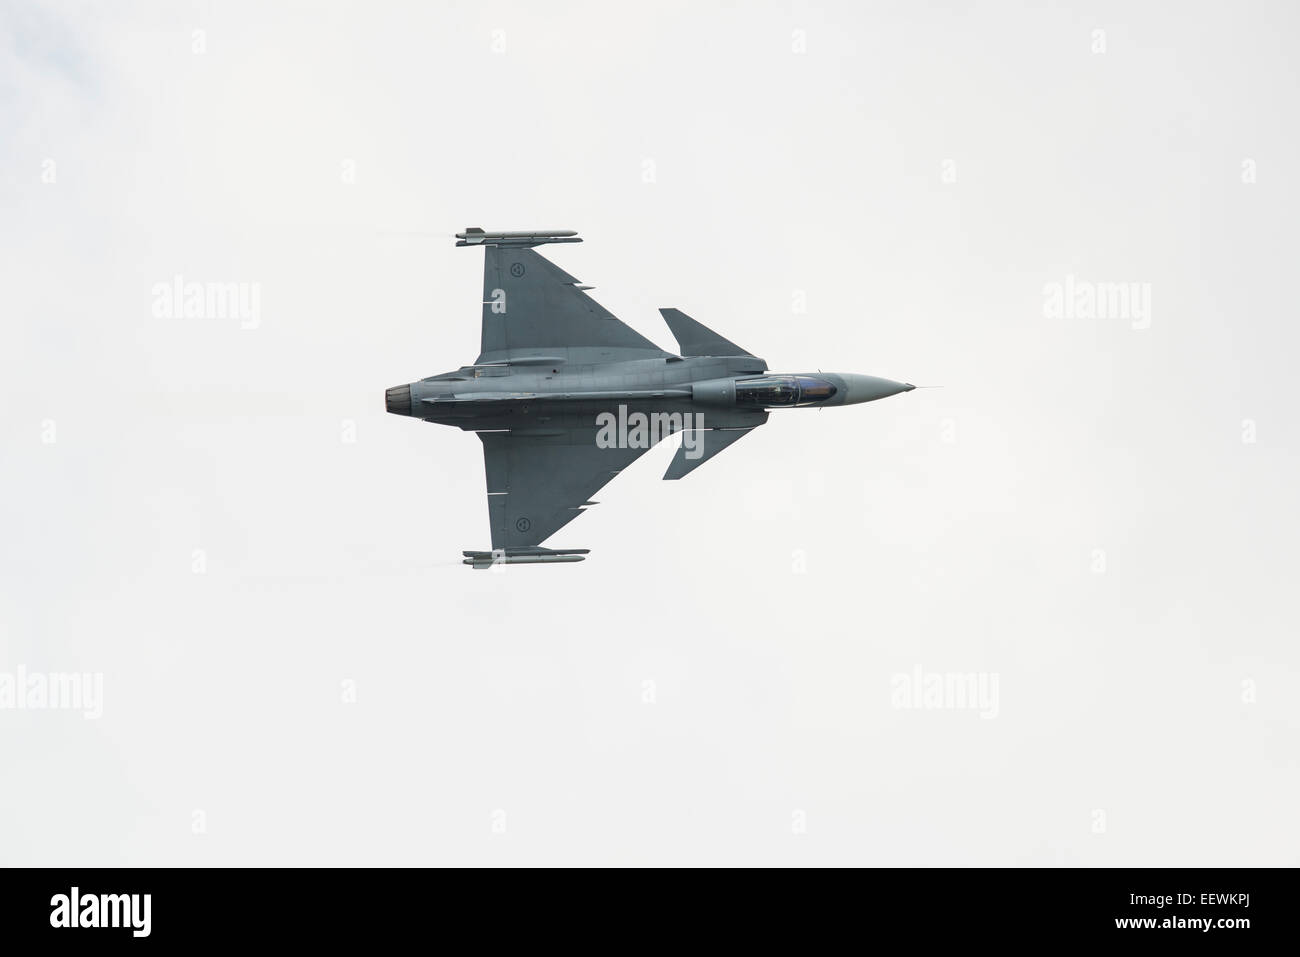 Saab JAS39C Gripen Fighter Jet of the Swedish Air Force F7 Squadron displays at Fairford during the 2014 RIAT - Stock Image